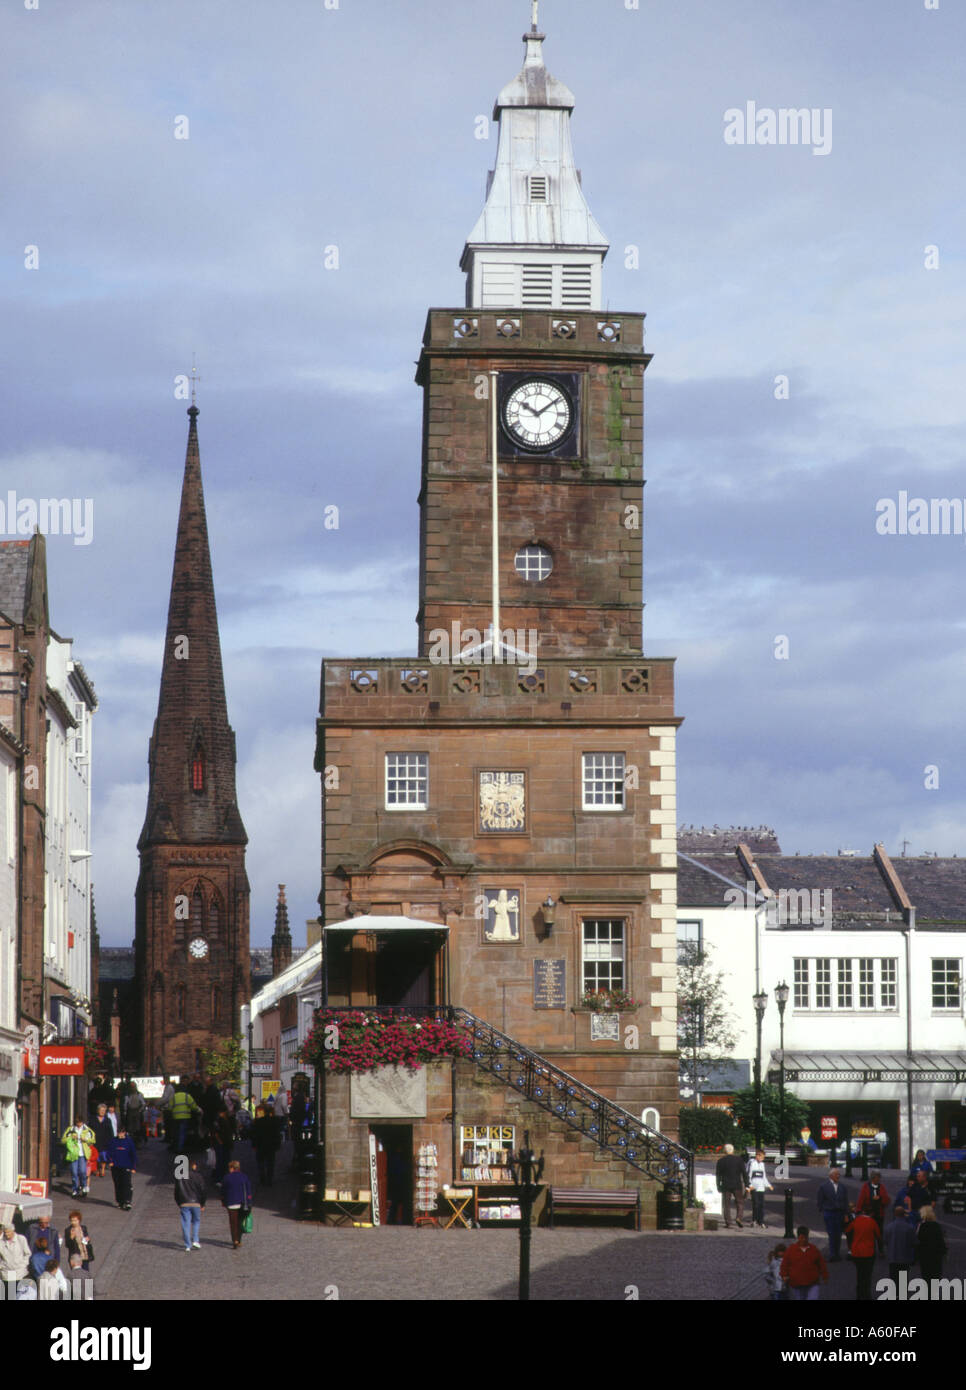 dh Town house DUMFRIES GALLOWAY Main street Stock Photo